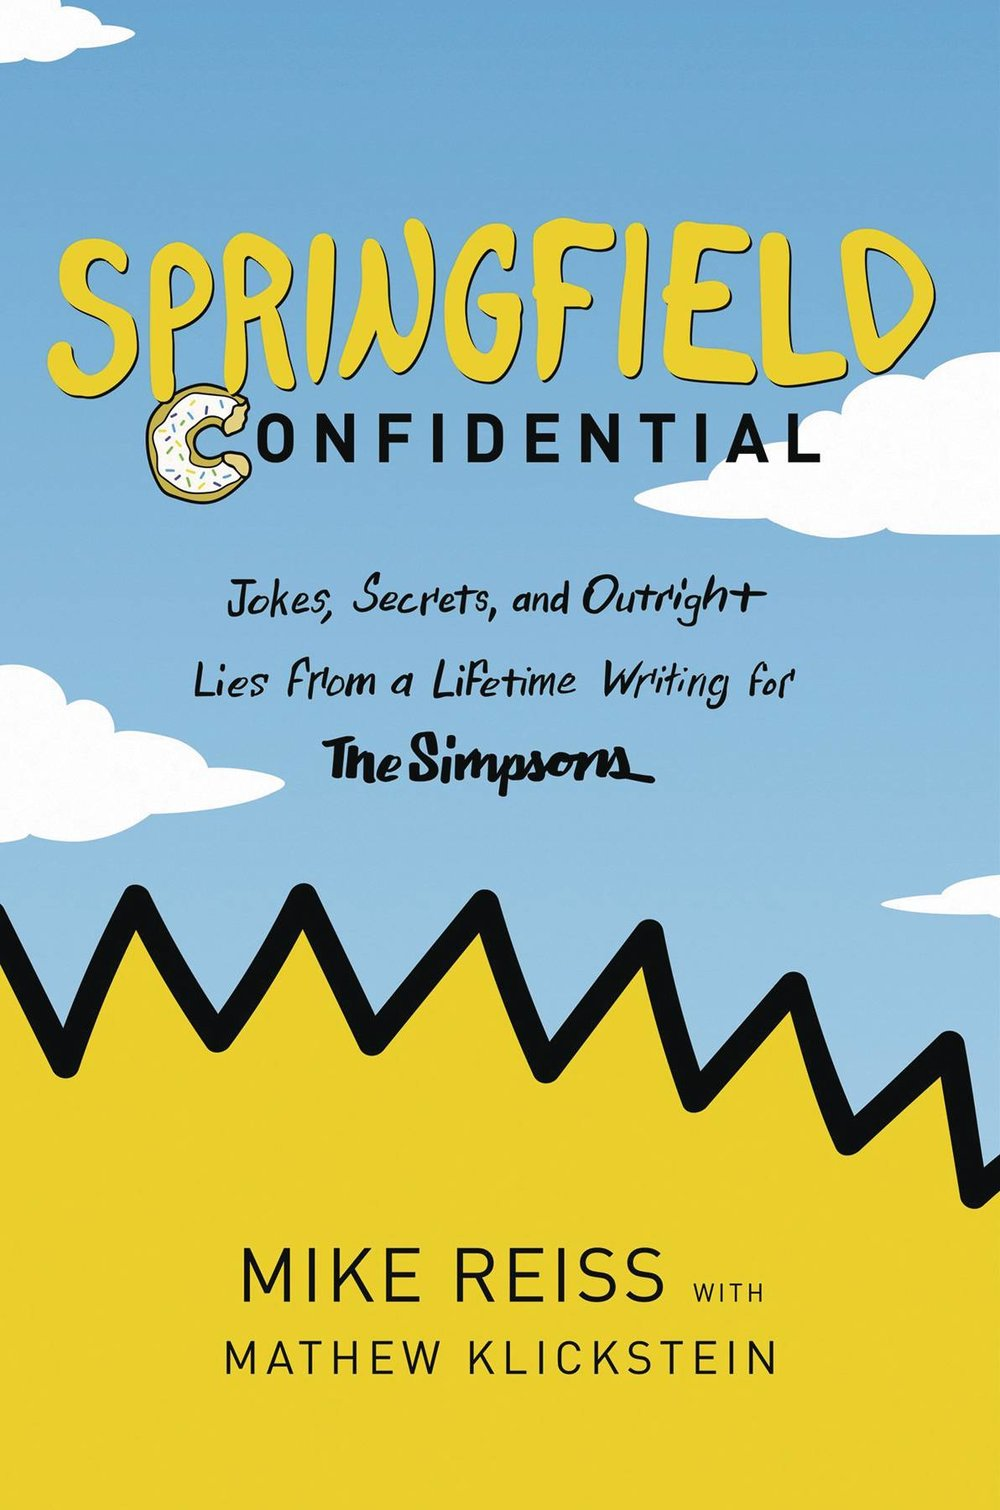 SPRINGFIELD CONFIDENTIAL A LIFETIME WRITING FOR THE SIMPSONS.jpg